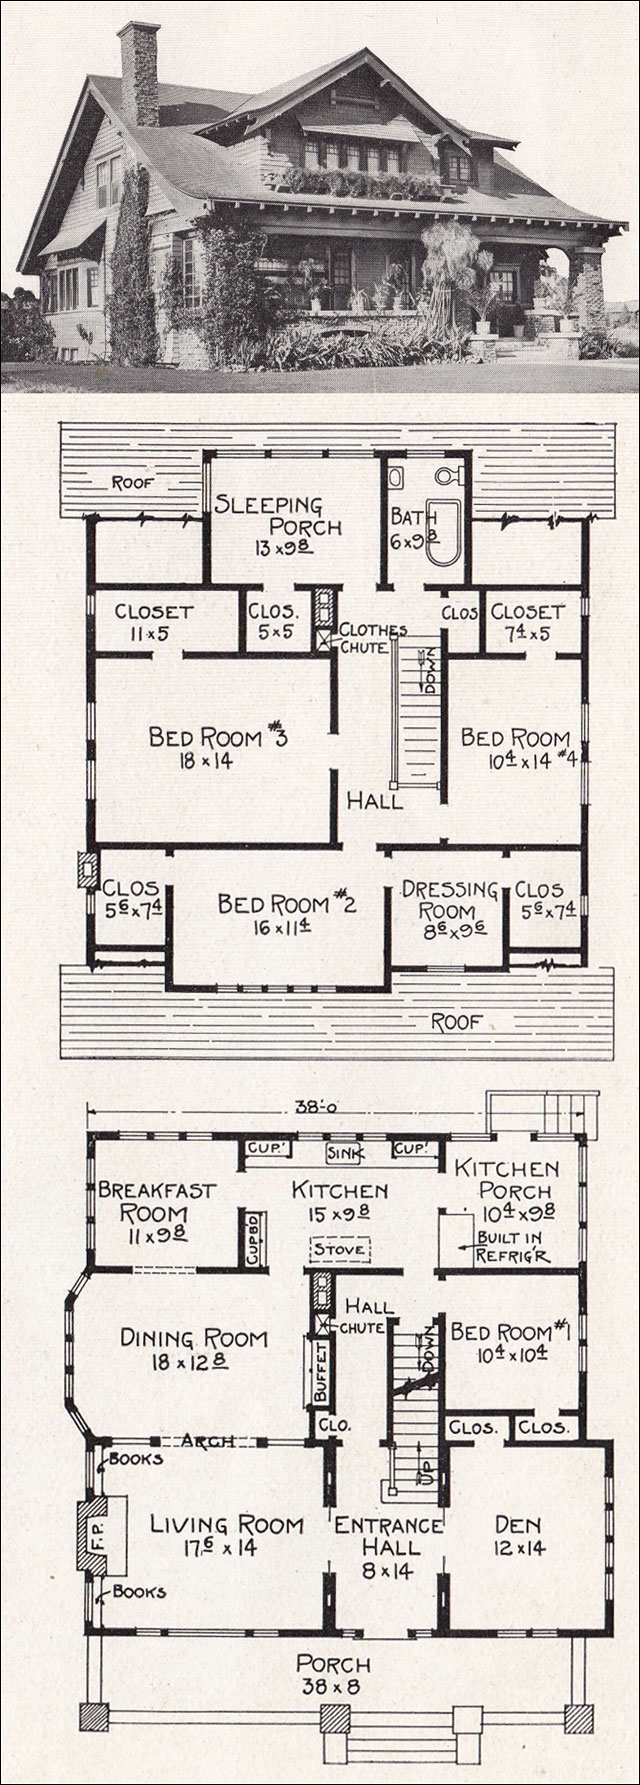 free home plans california bungalow floor plans new bungalow floor plans california bungalow floor plans